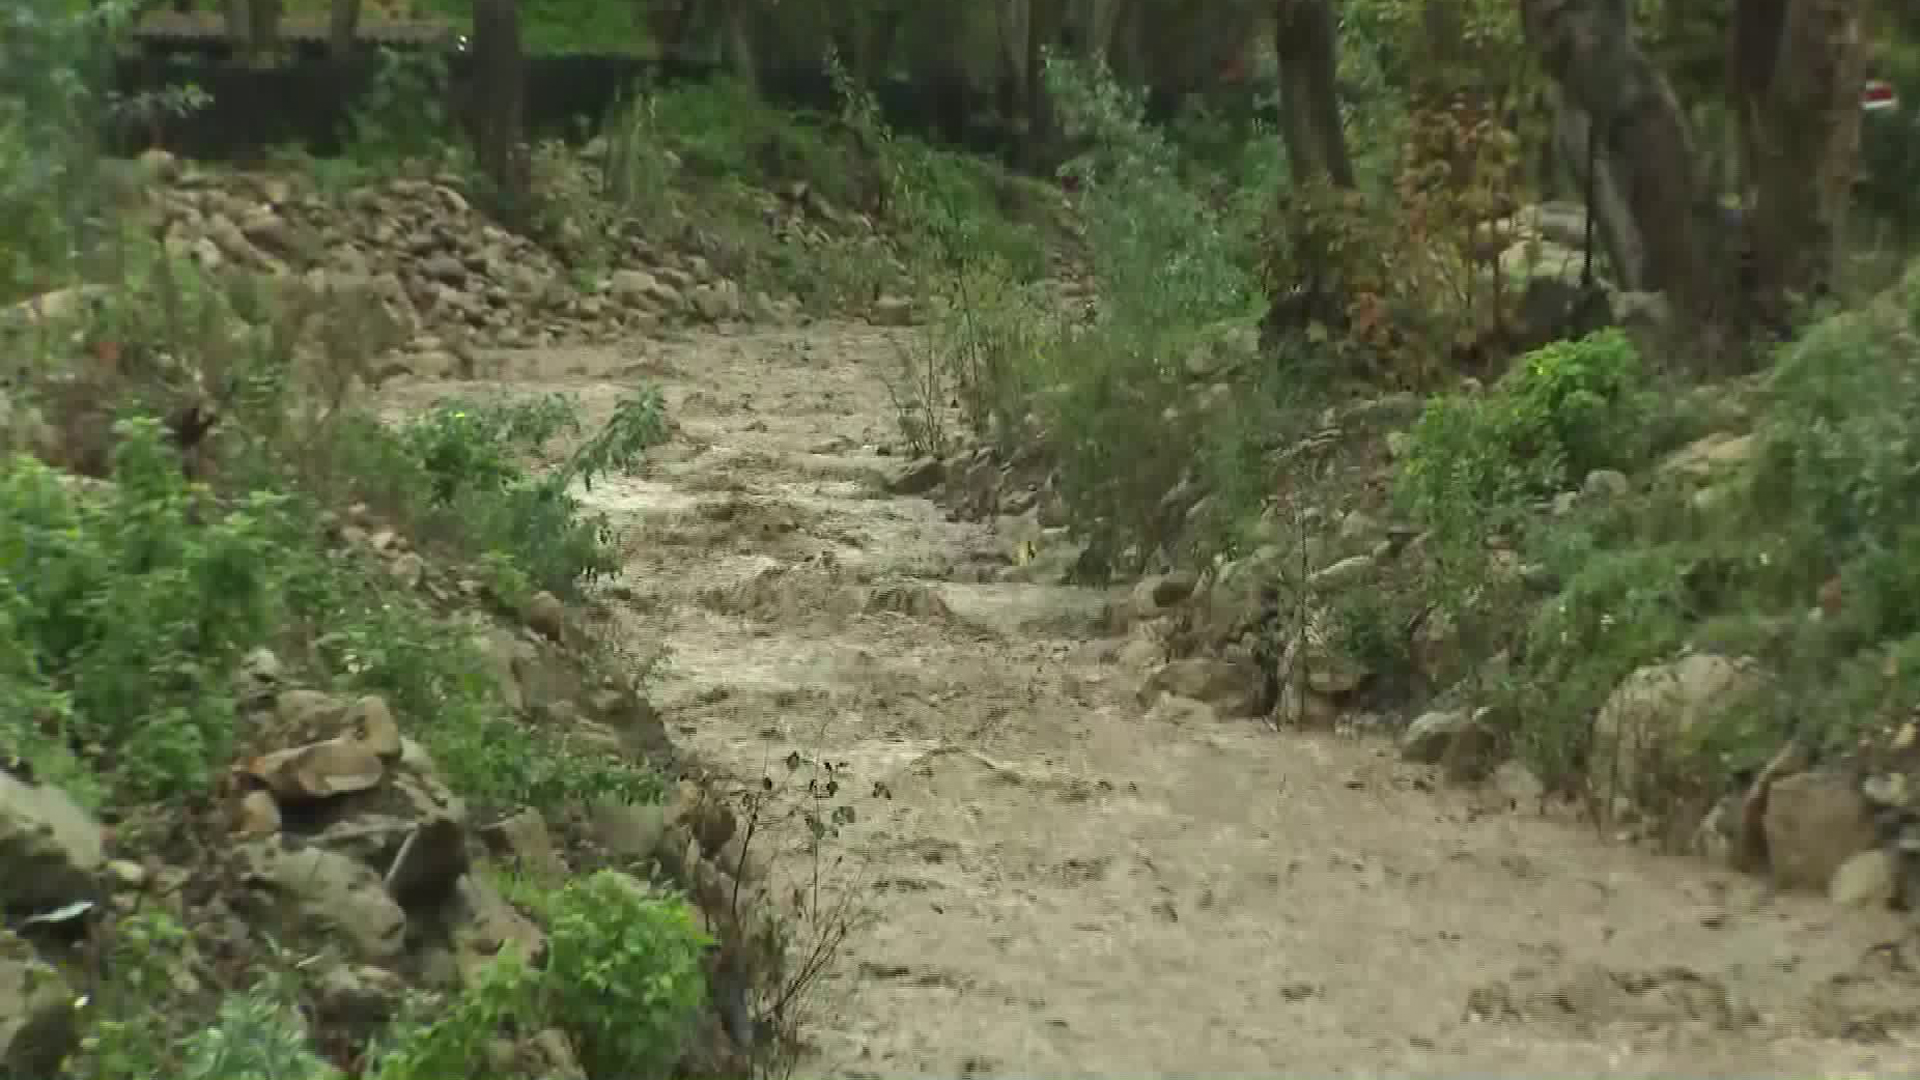 Montecito Creek swelled to a fast-moving river amid a powerful winter storm on Jan. 17, 2019. (Credit: KTLA)